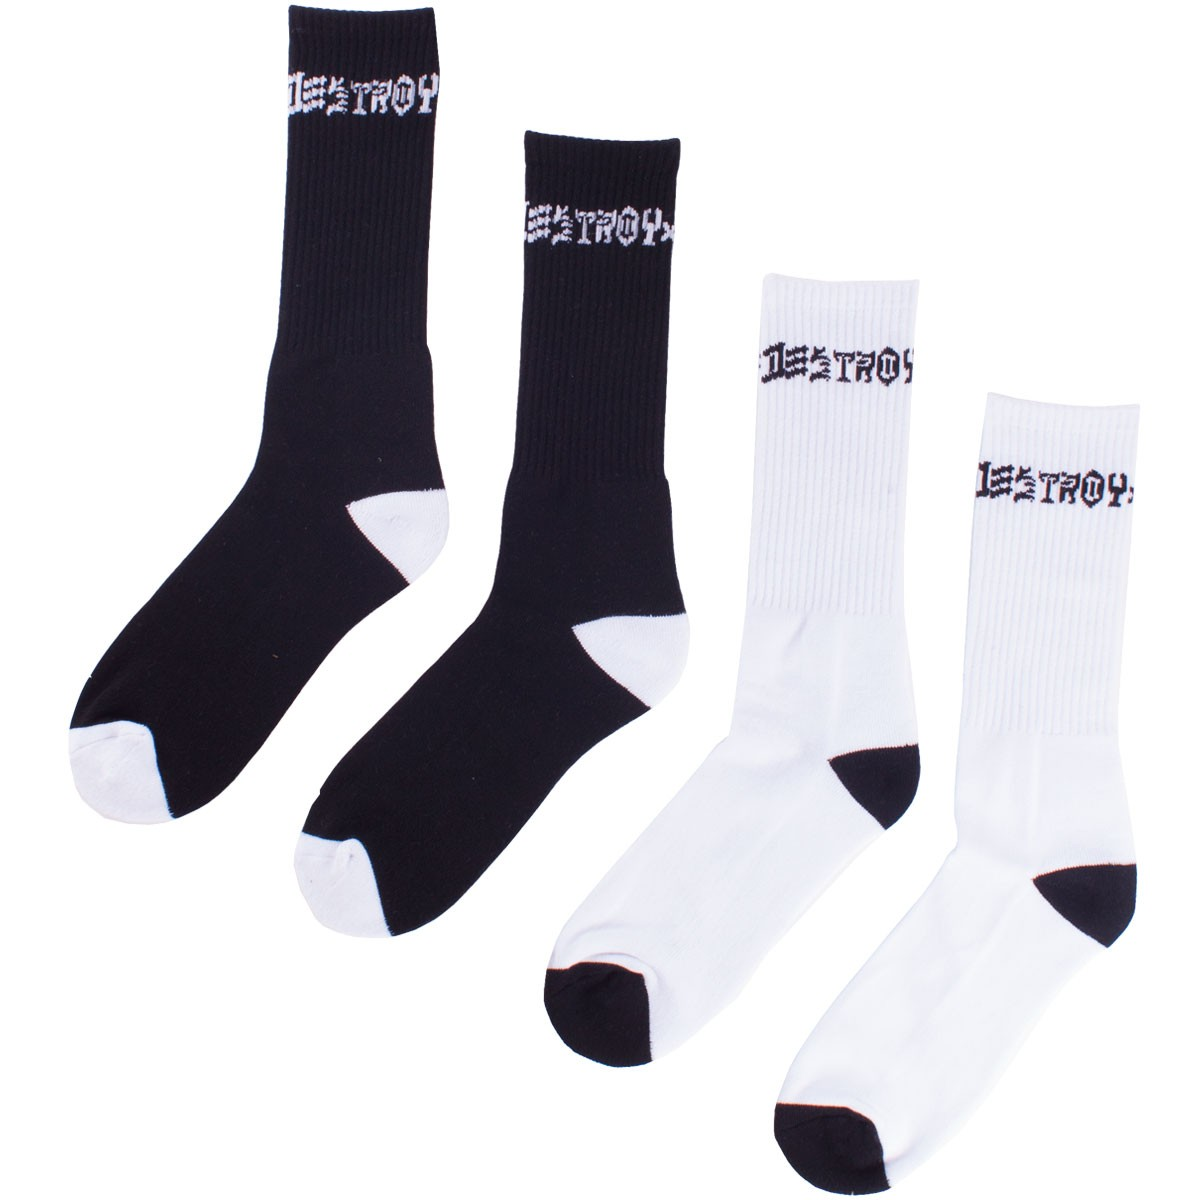 Thrasher Skate and Destroy Socks - 2 Pack